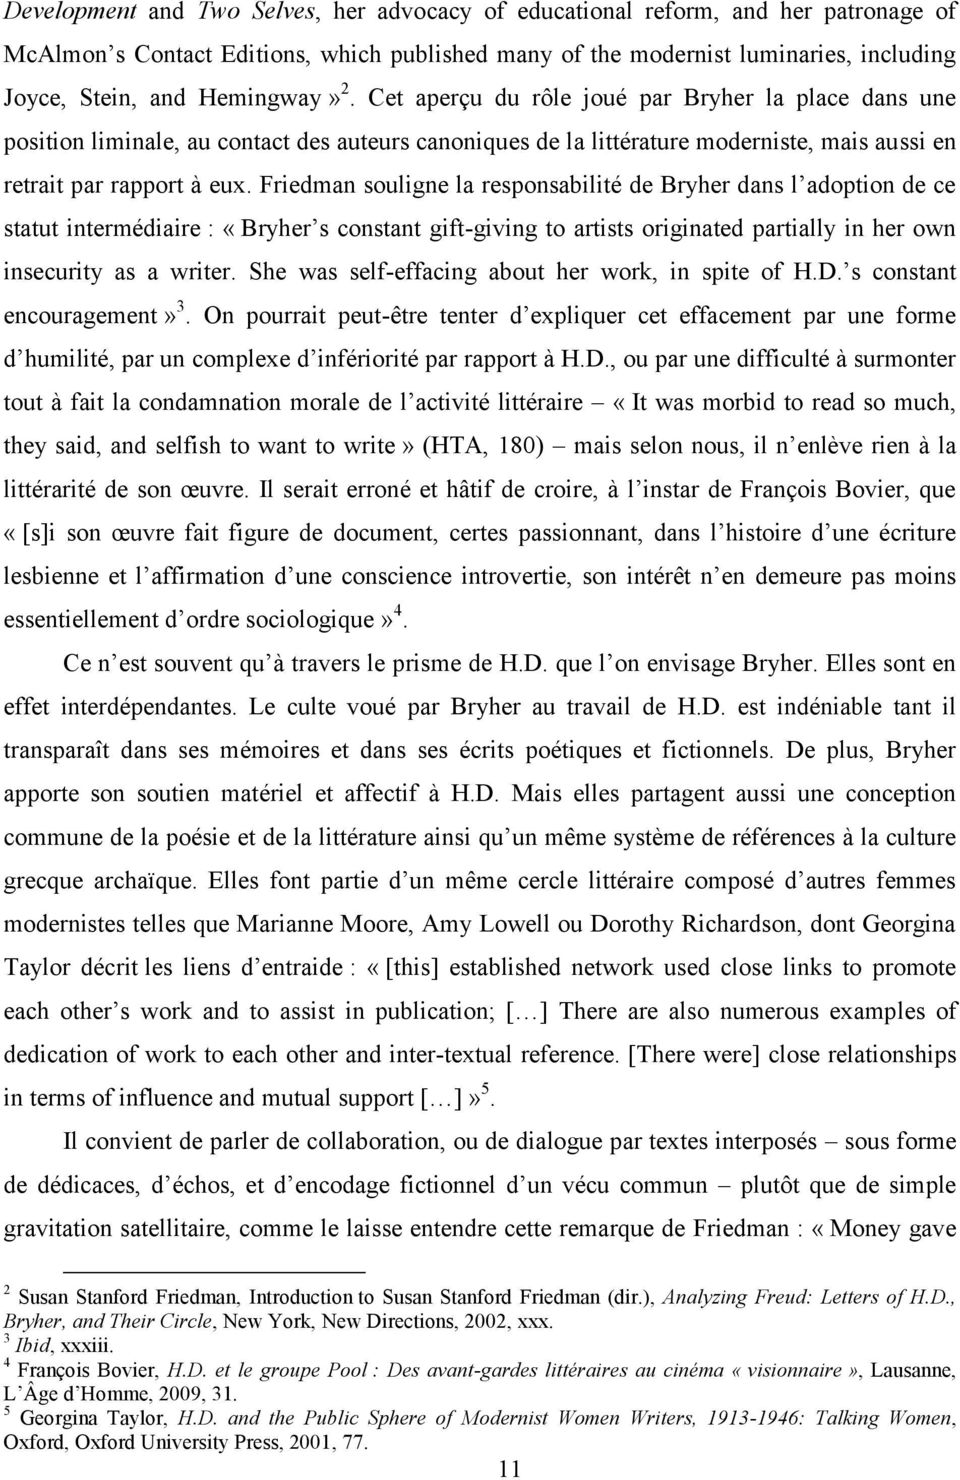 Friedman souligne la responsabilité de Bryher dans l adoption de ce statut intermédiaire : «Bryher s constant gift-giving to artists originated partially in her own insecurity as a writer.